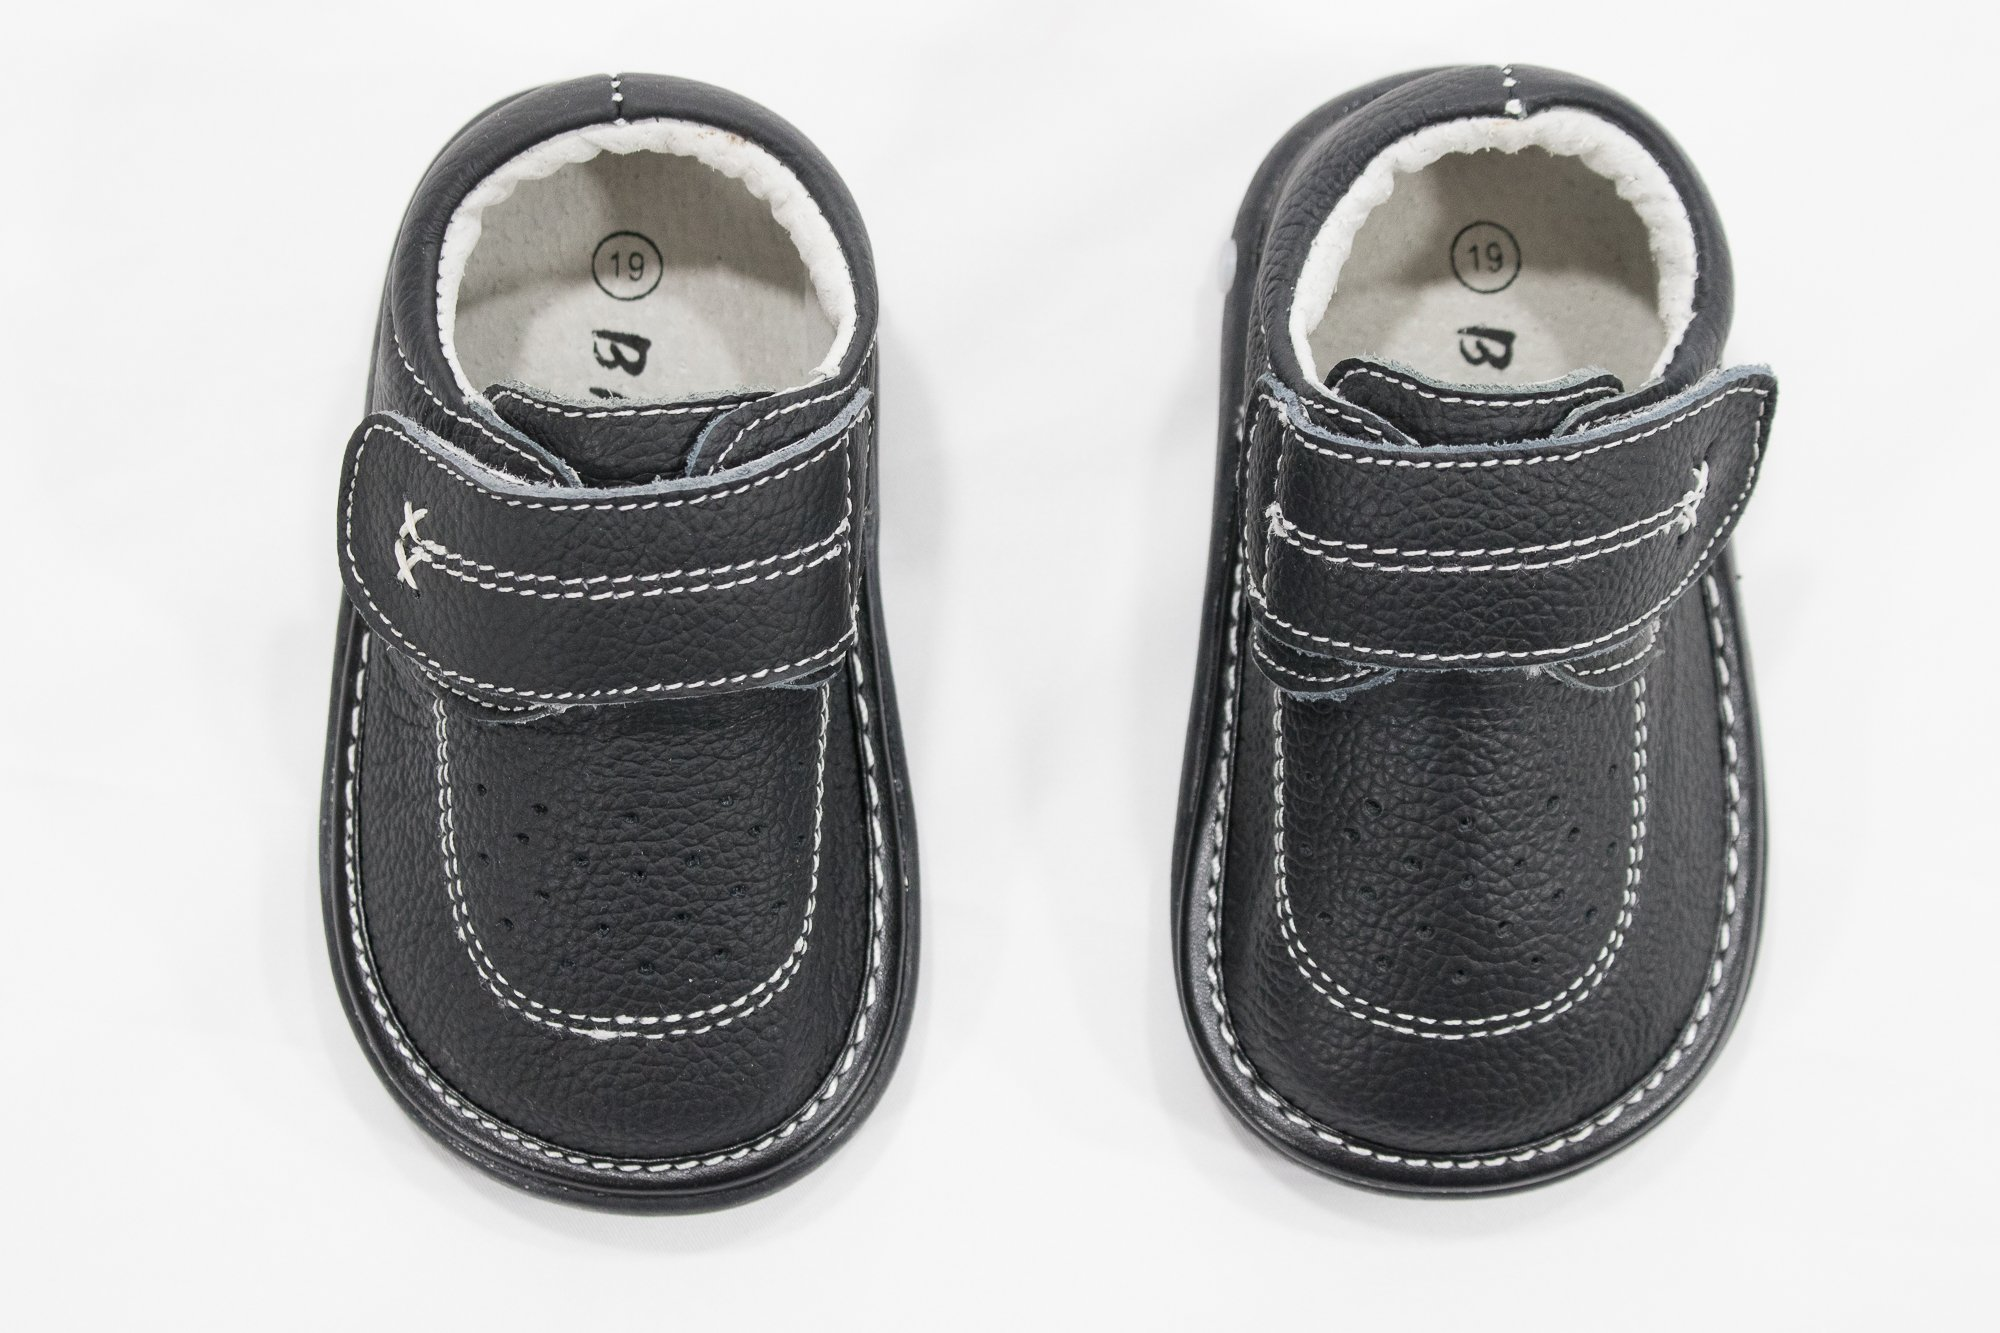 Anderson Baby Care LLC Squeaky Shoes for Toddler Boys (4T, Black Loafer) by Anderson Baby Care LLC (Image #8)